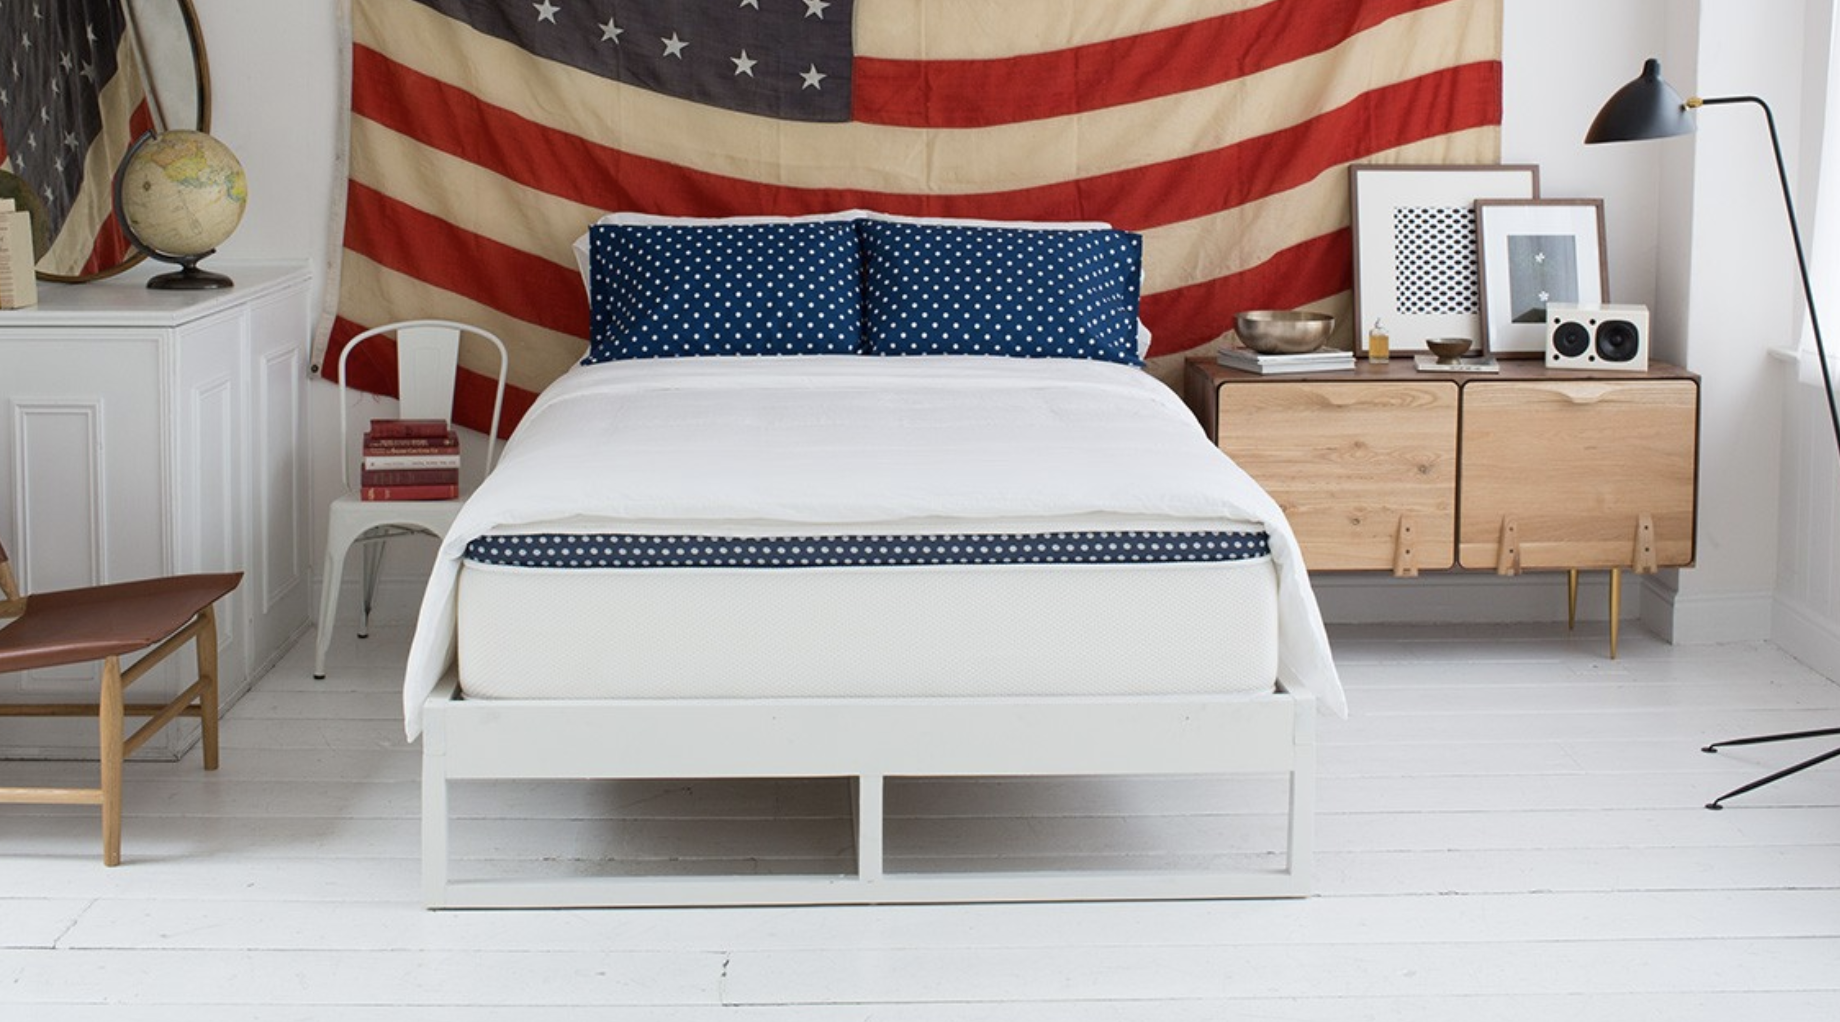 WinkBed Plus in a bedroom with an American flag hanging on the wall